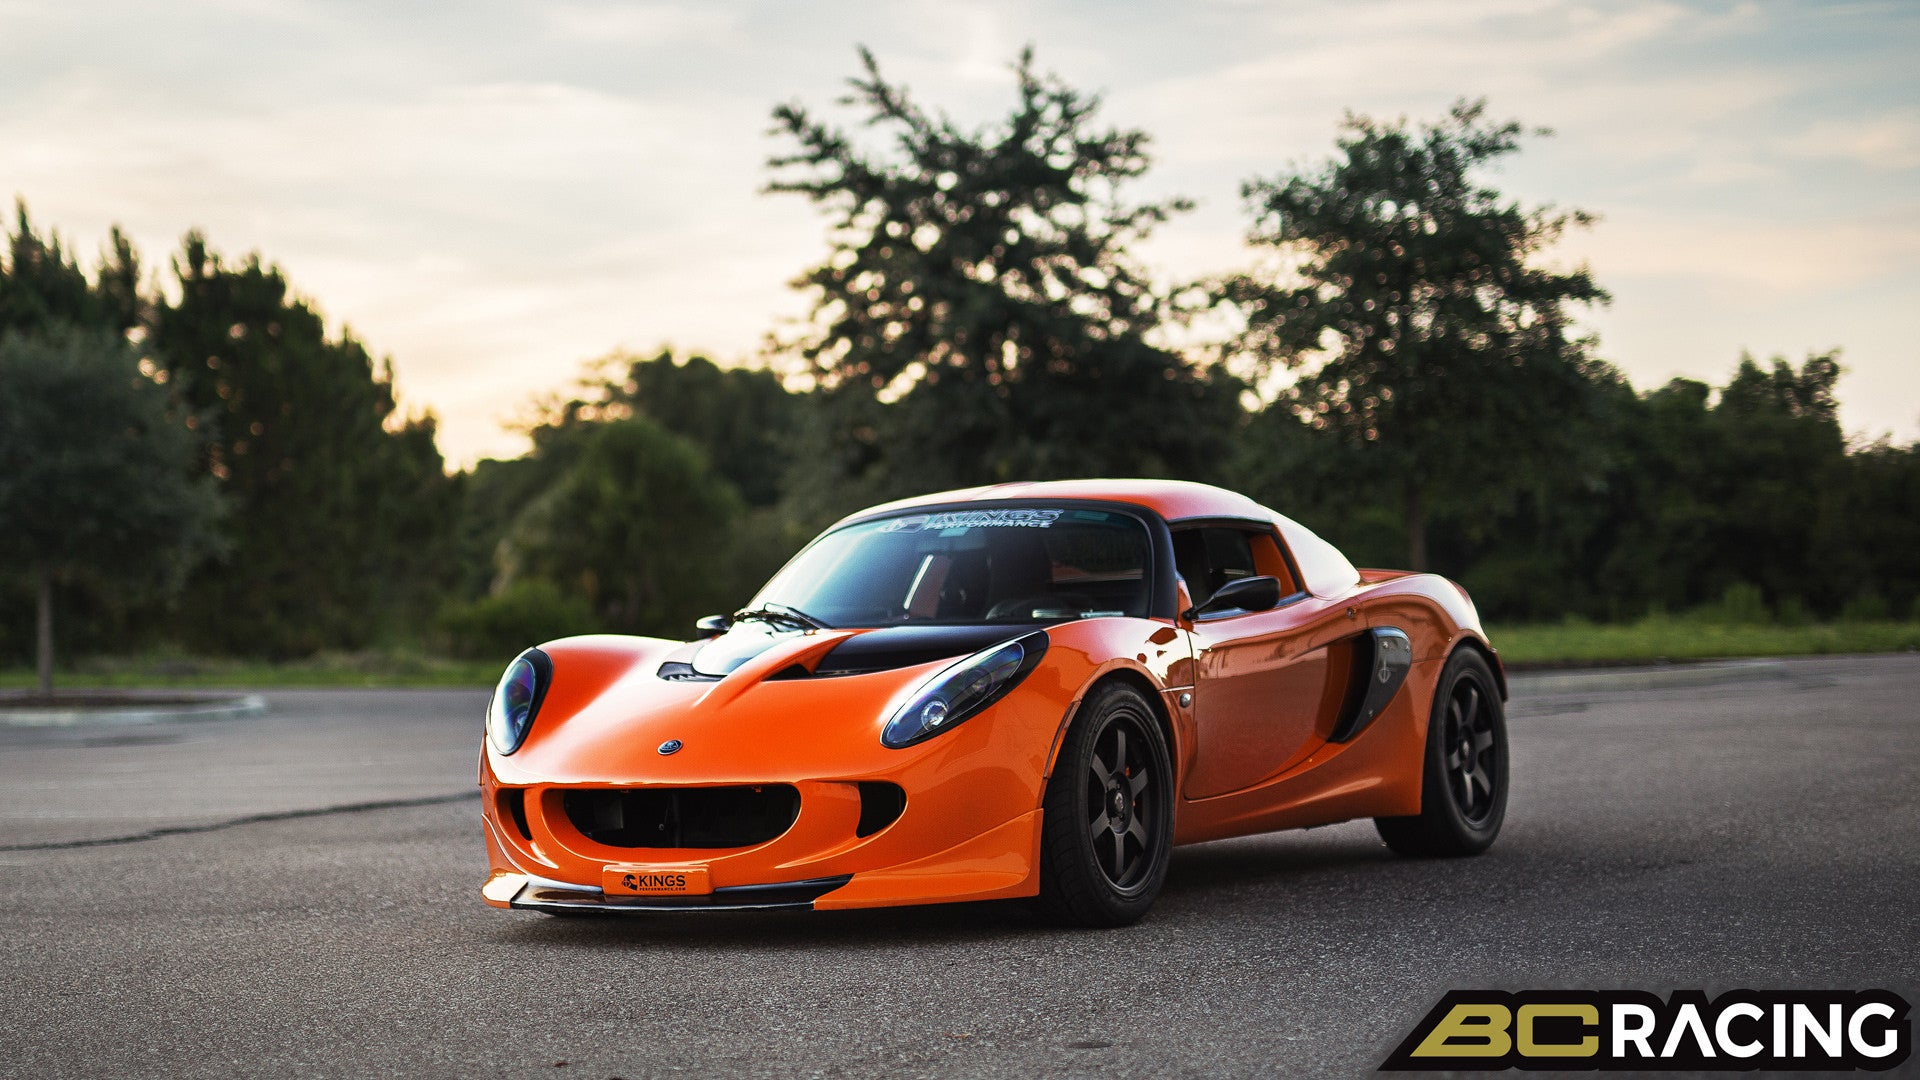 Lotus BC Racing Coilovers